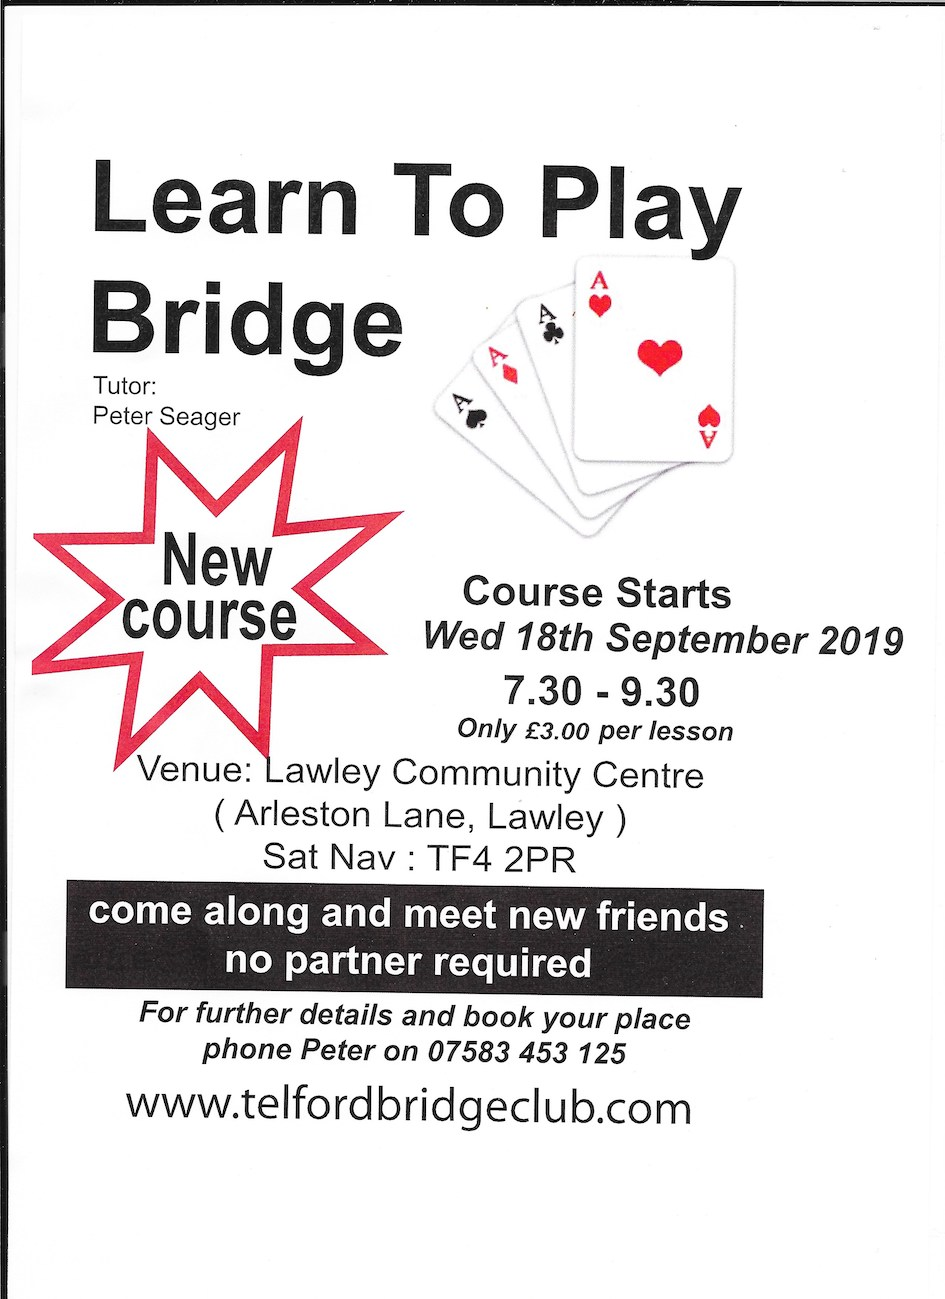 New Course in September 2019